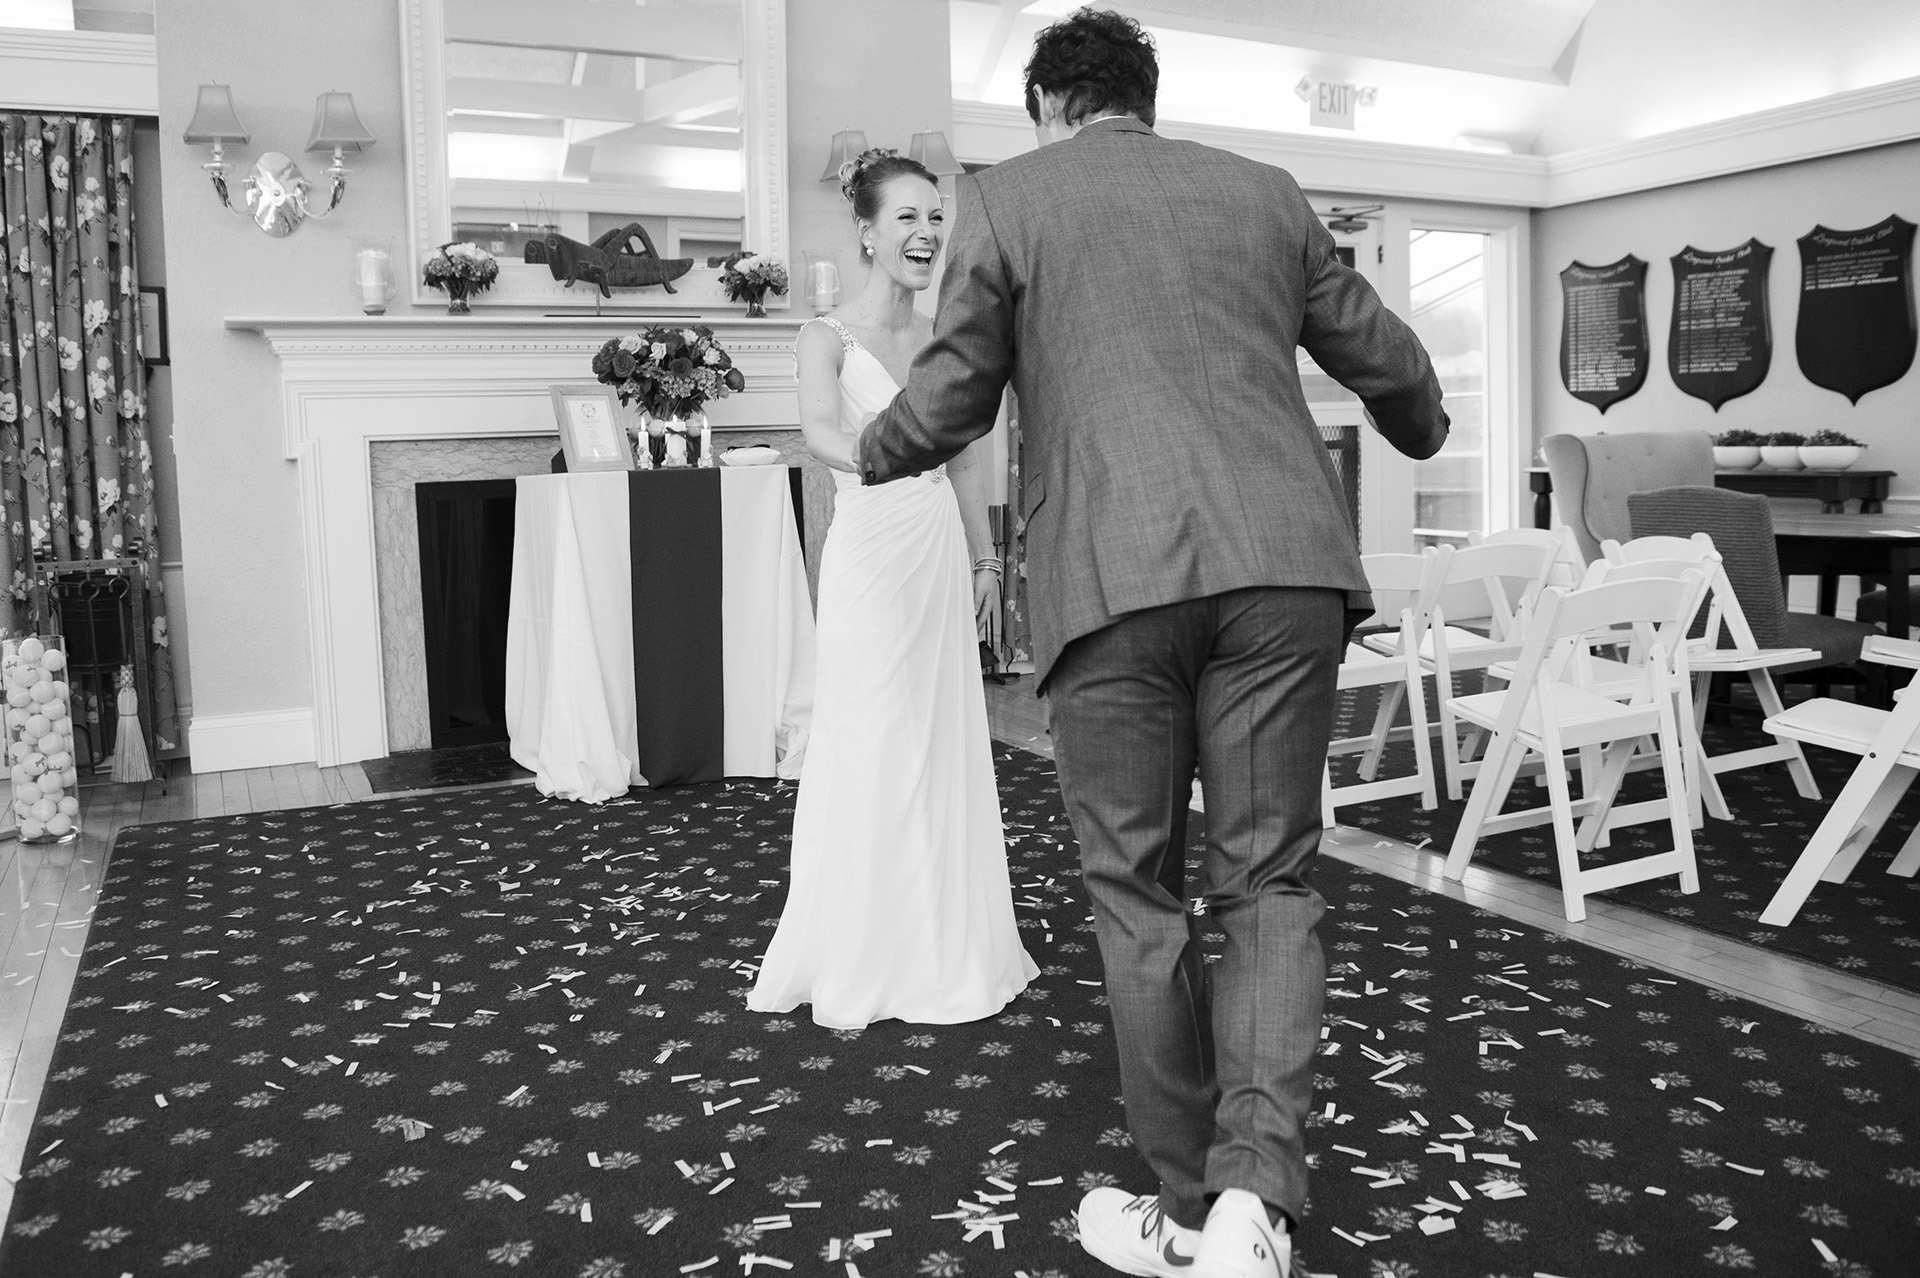 Massachusetts Elopement Photography | The groom is light on his feet in a pair of tennis Nikes